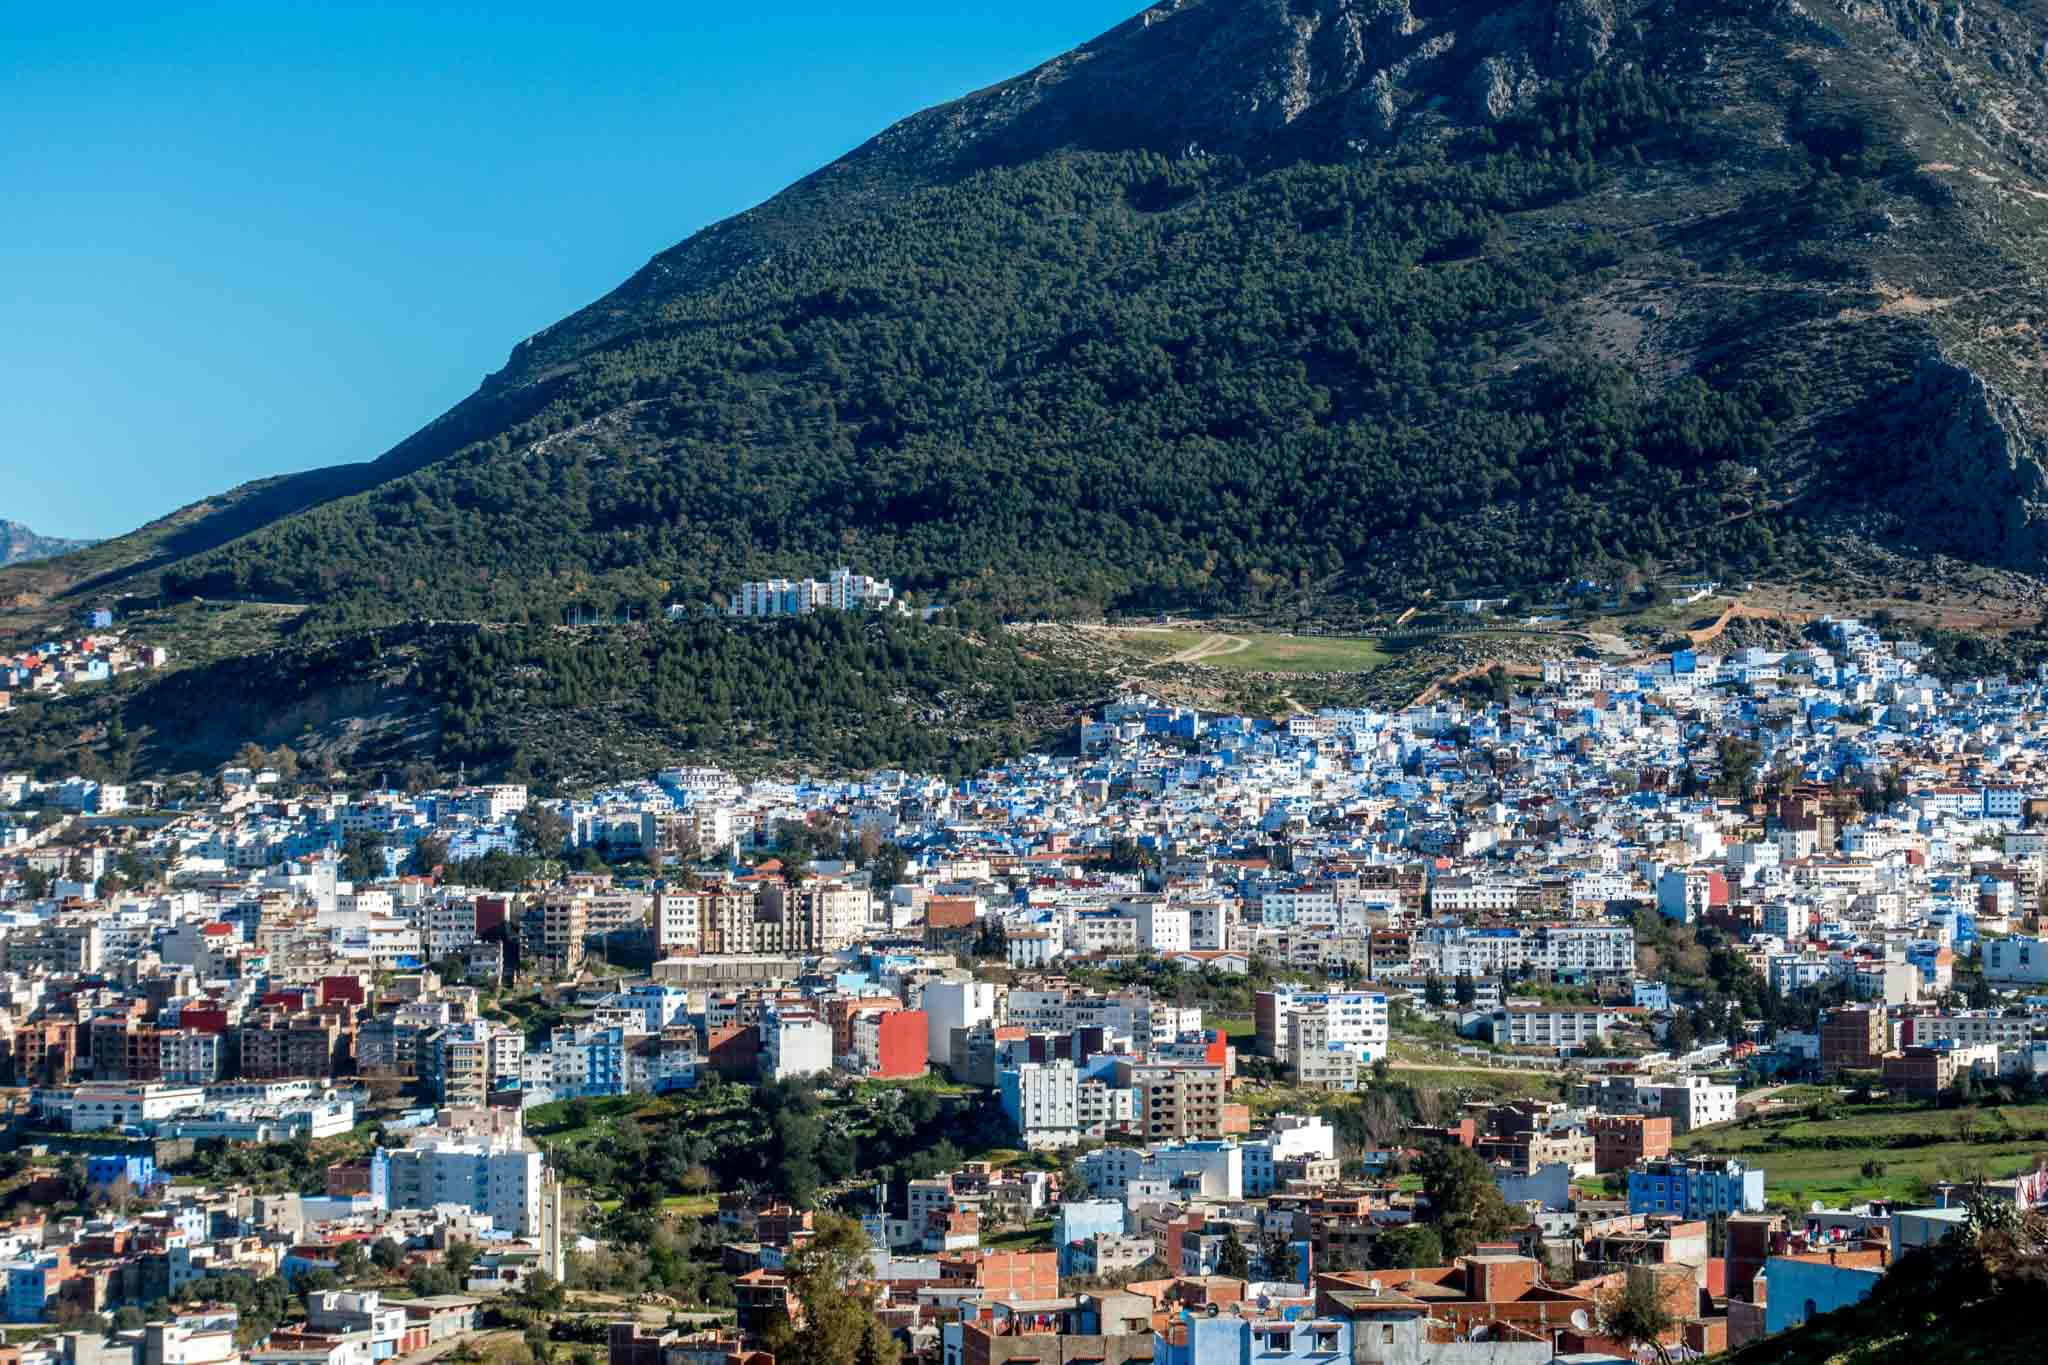 Panoramic view of Chefchaouen Morocco, in the Rif Mountains